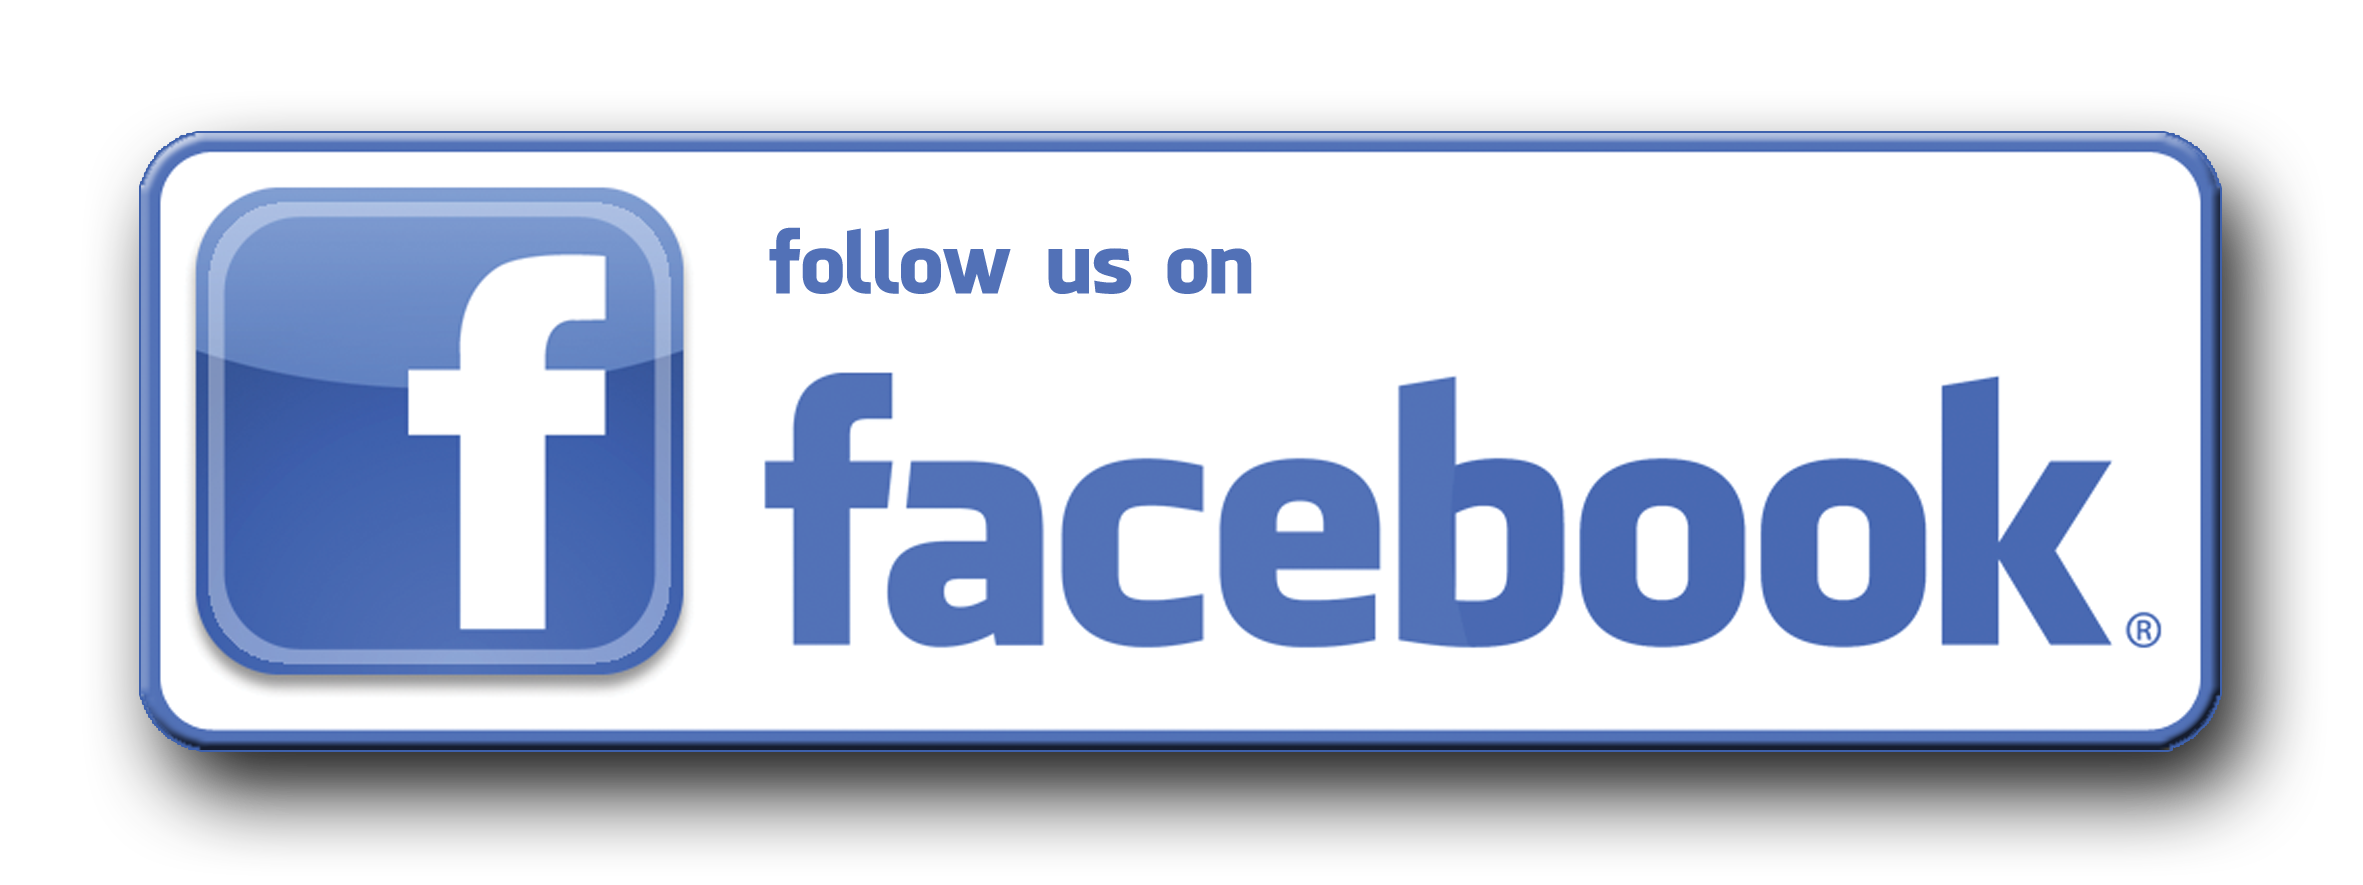 follow st bridget church on facebook